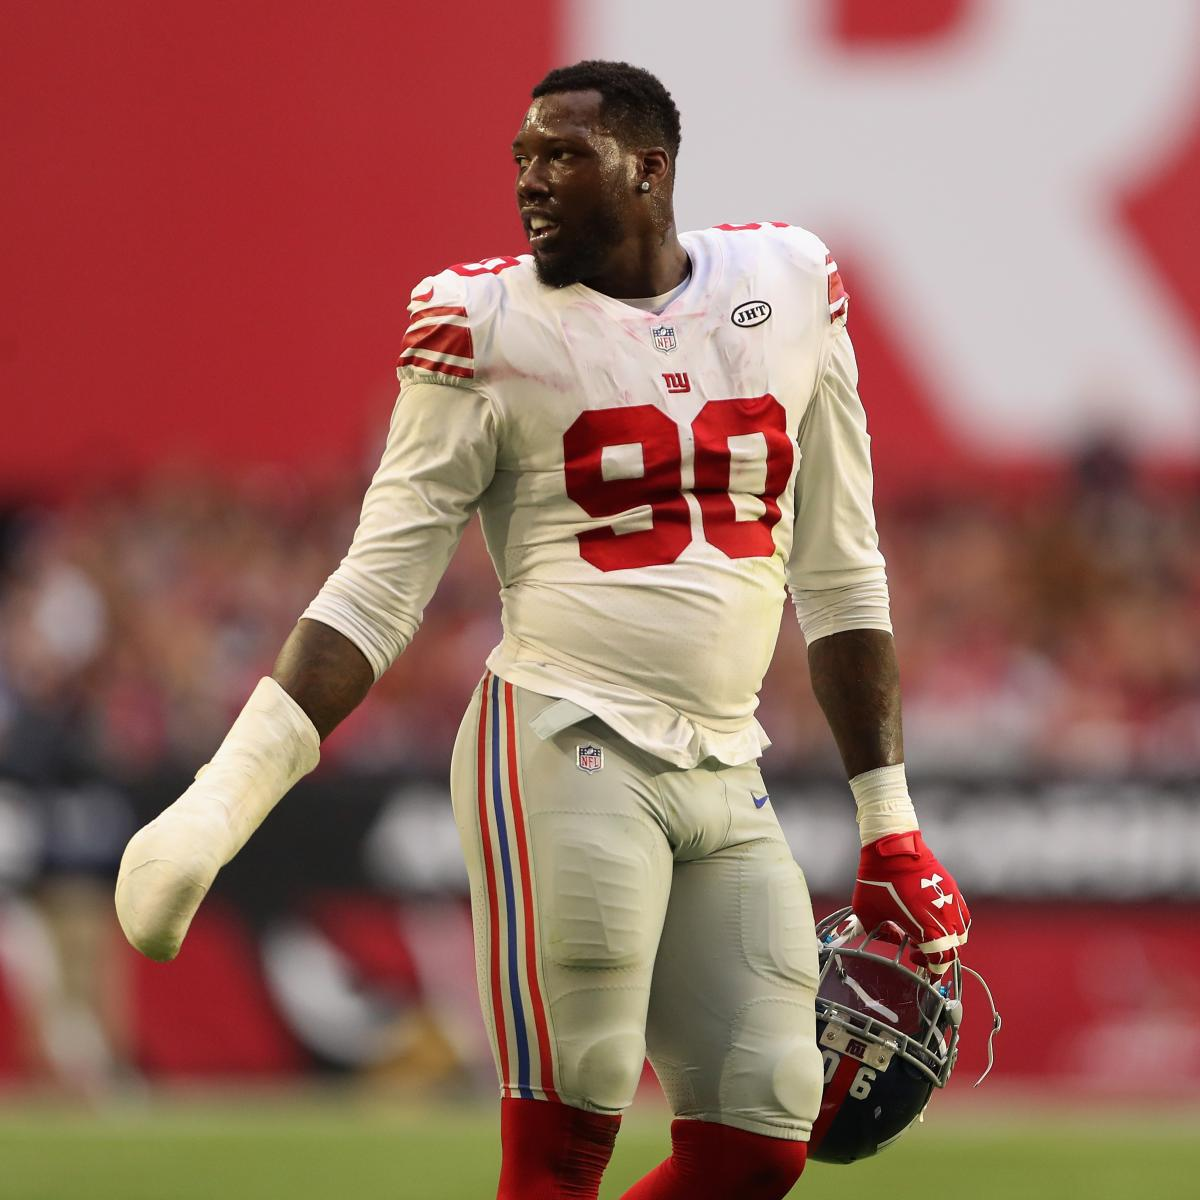 Jason Pierre Paul What Kind Of Firework: Jason Pierre-Paul Trade Ends Another Giants Era, And